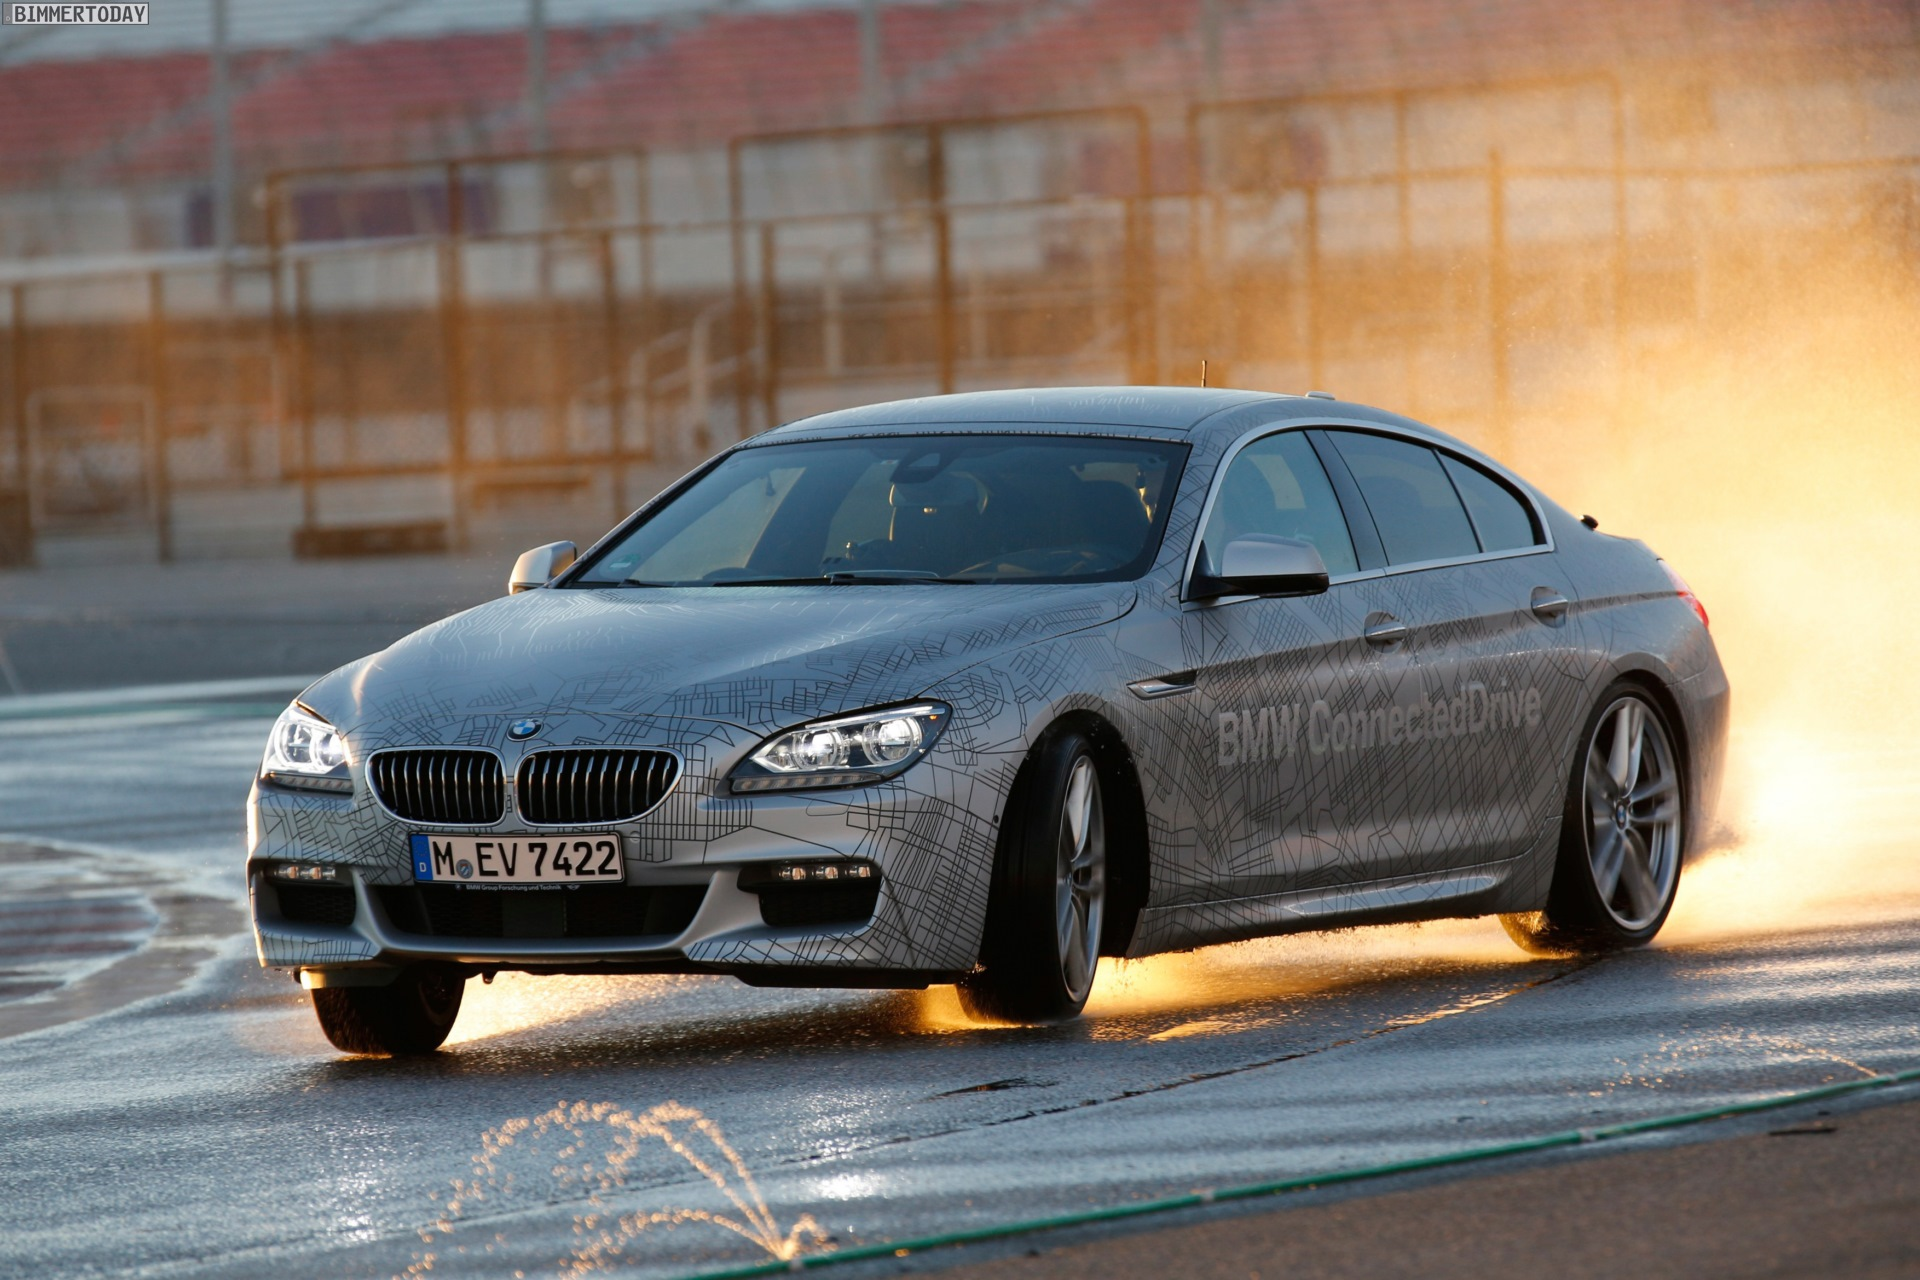 Bmw 6er F06 Neue Fotos Und Video Vom Self Drifting Car In Las Vegas